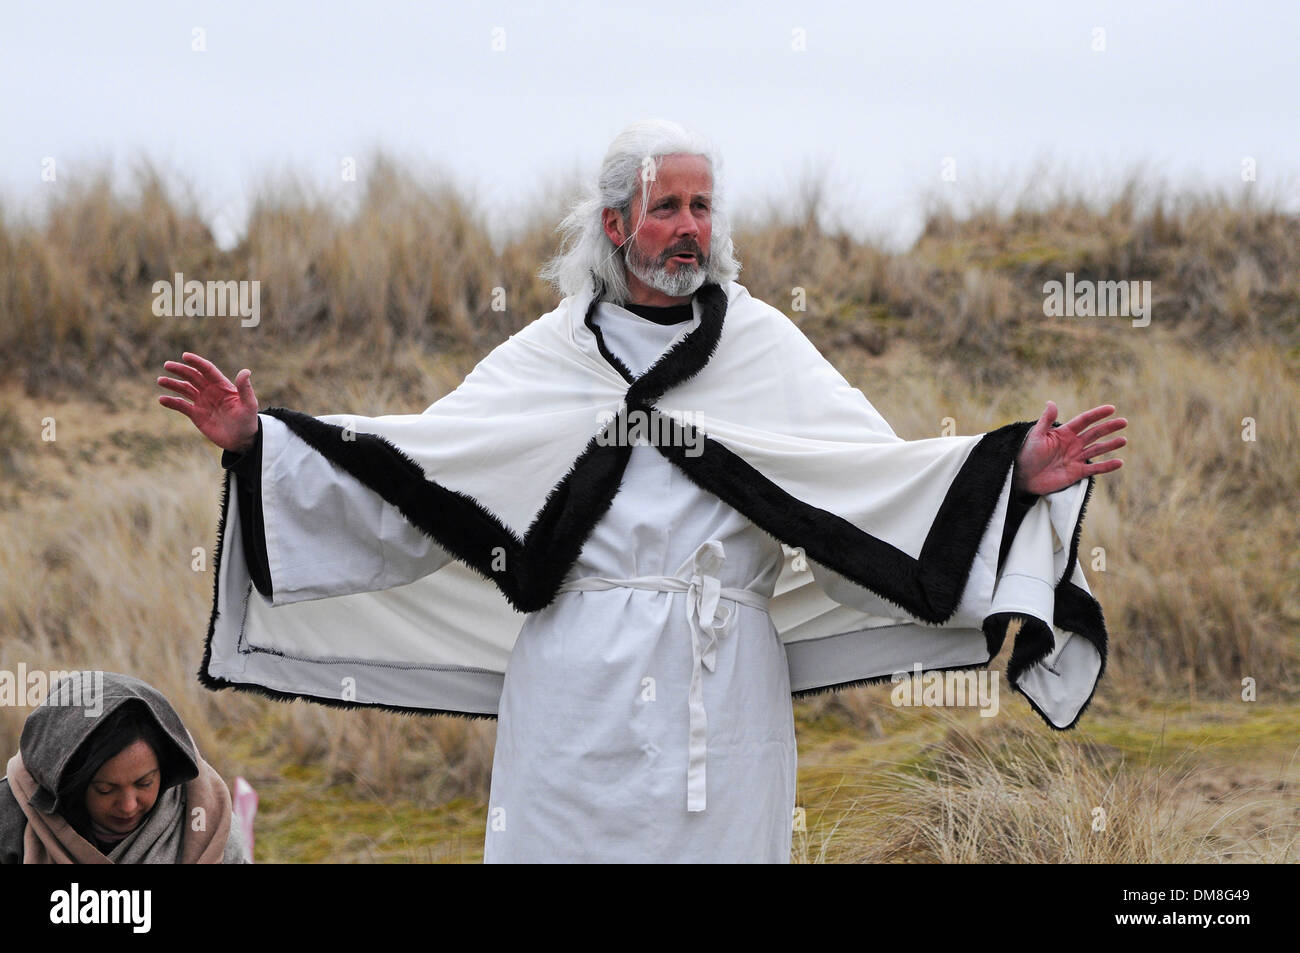 an actor plays St.Piran the patron saint of tin miners during the annual celebrations on St.Pirans day in Cornwall, - Stock Image